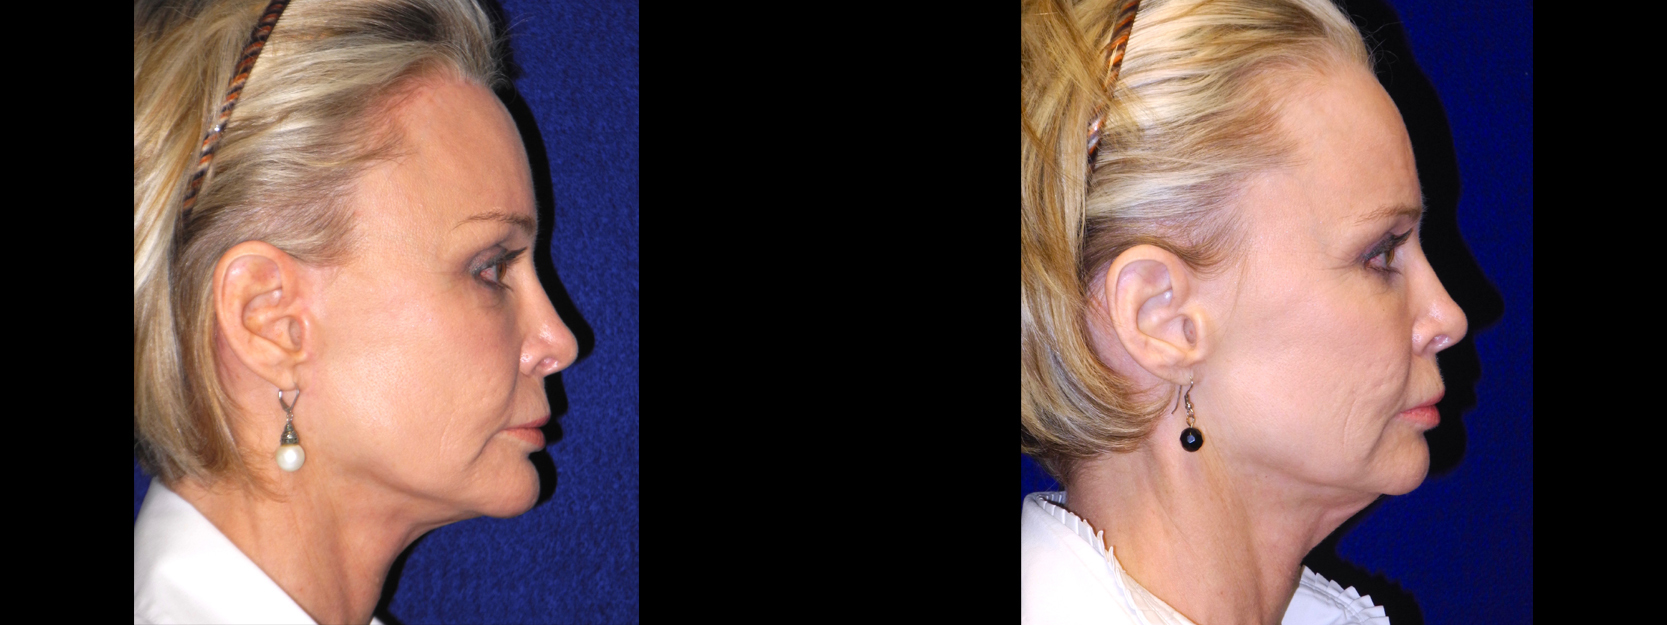 Right Profile - Facelift, Browlift, Chin Implant